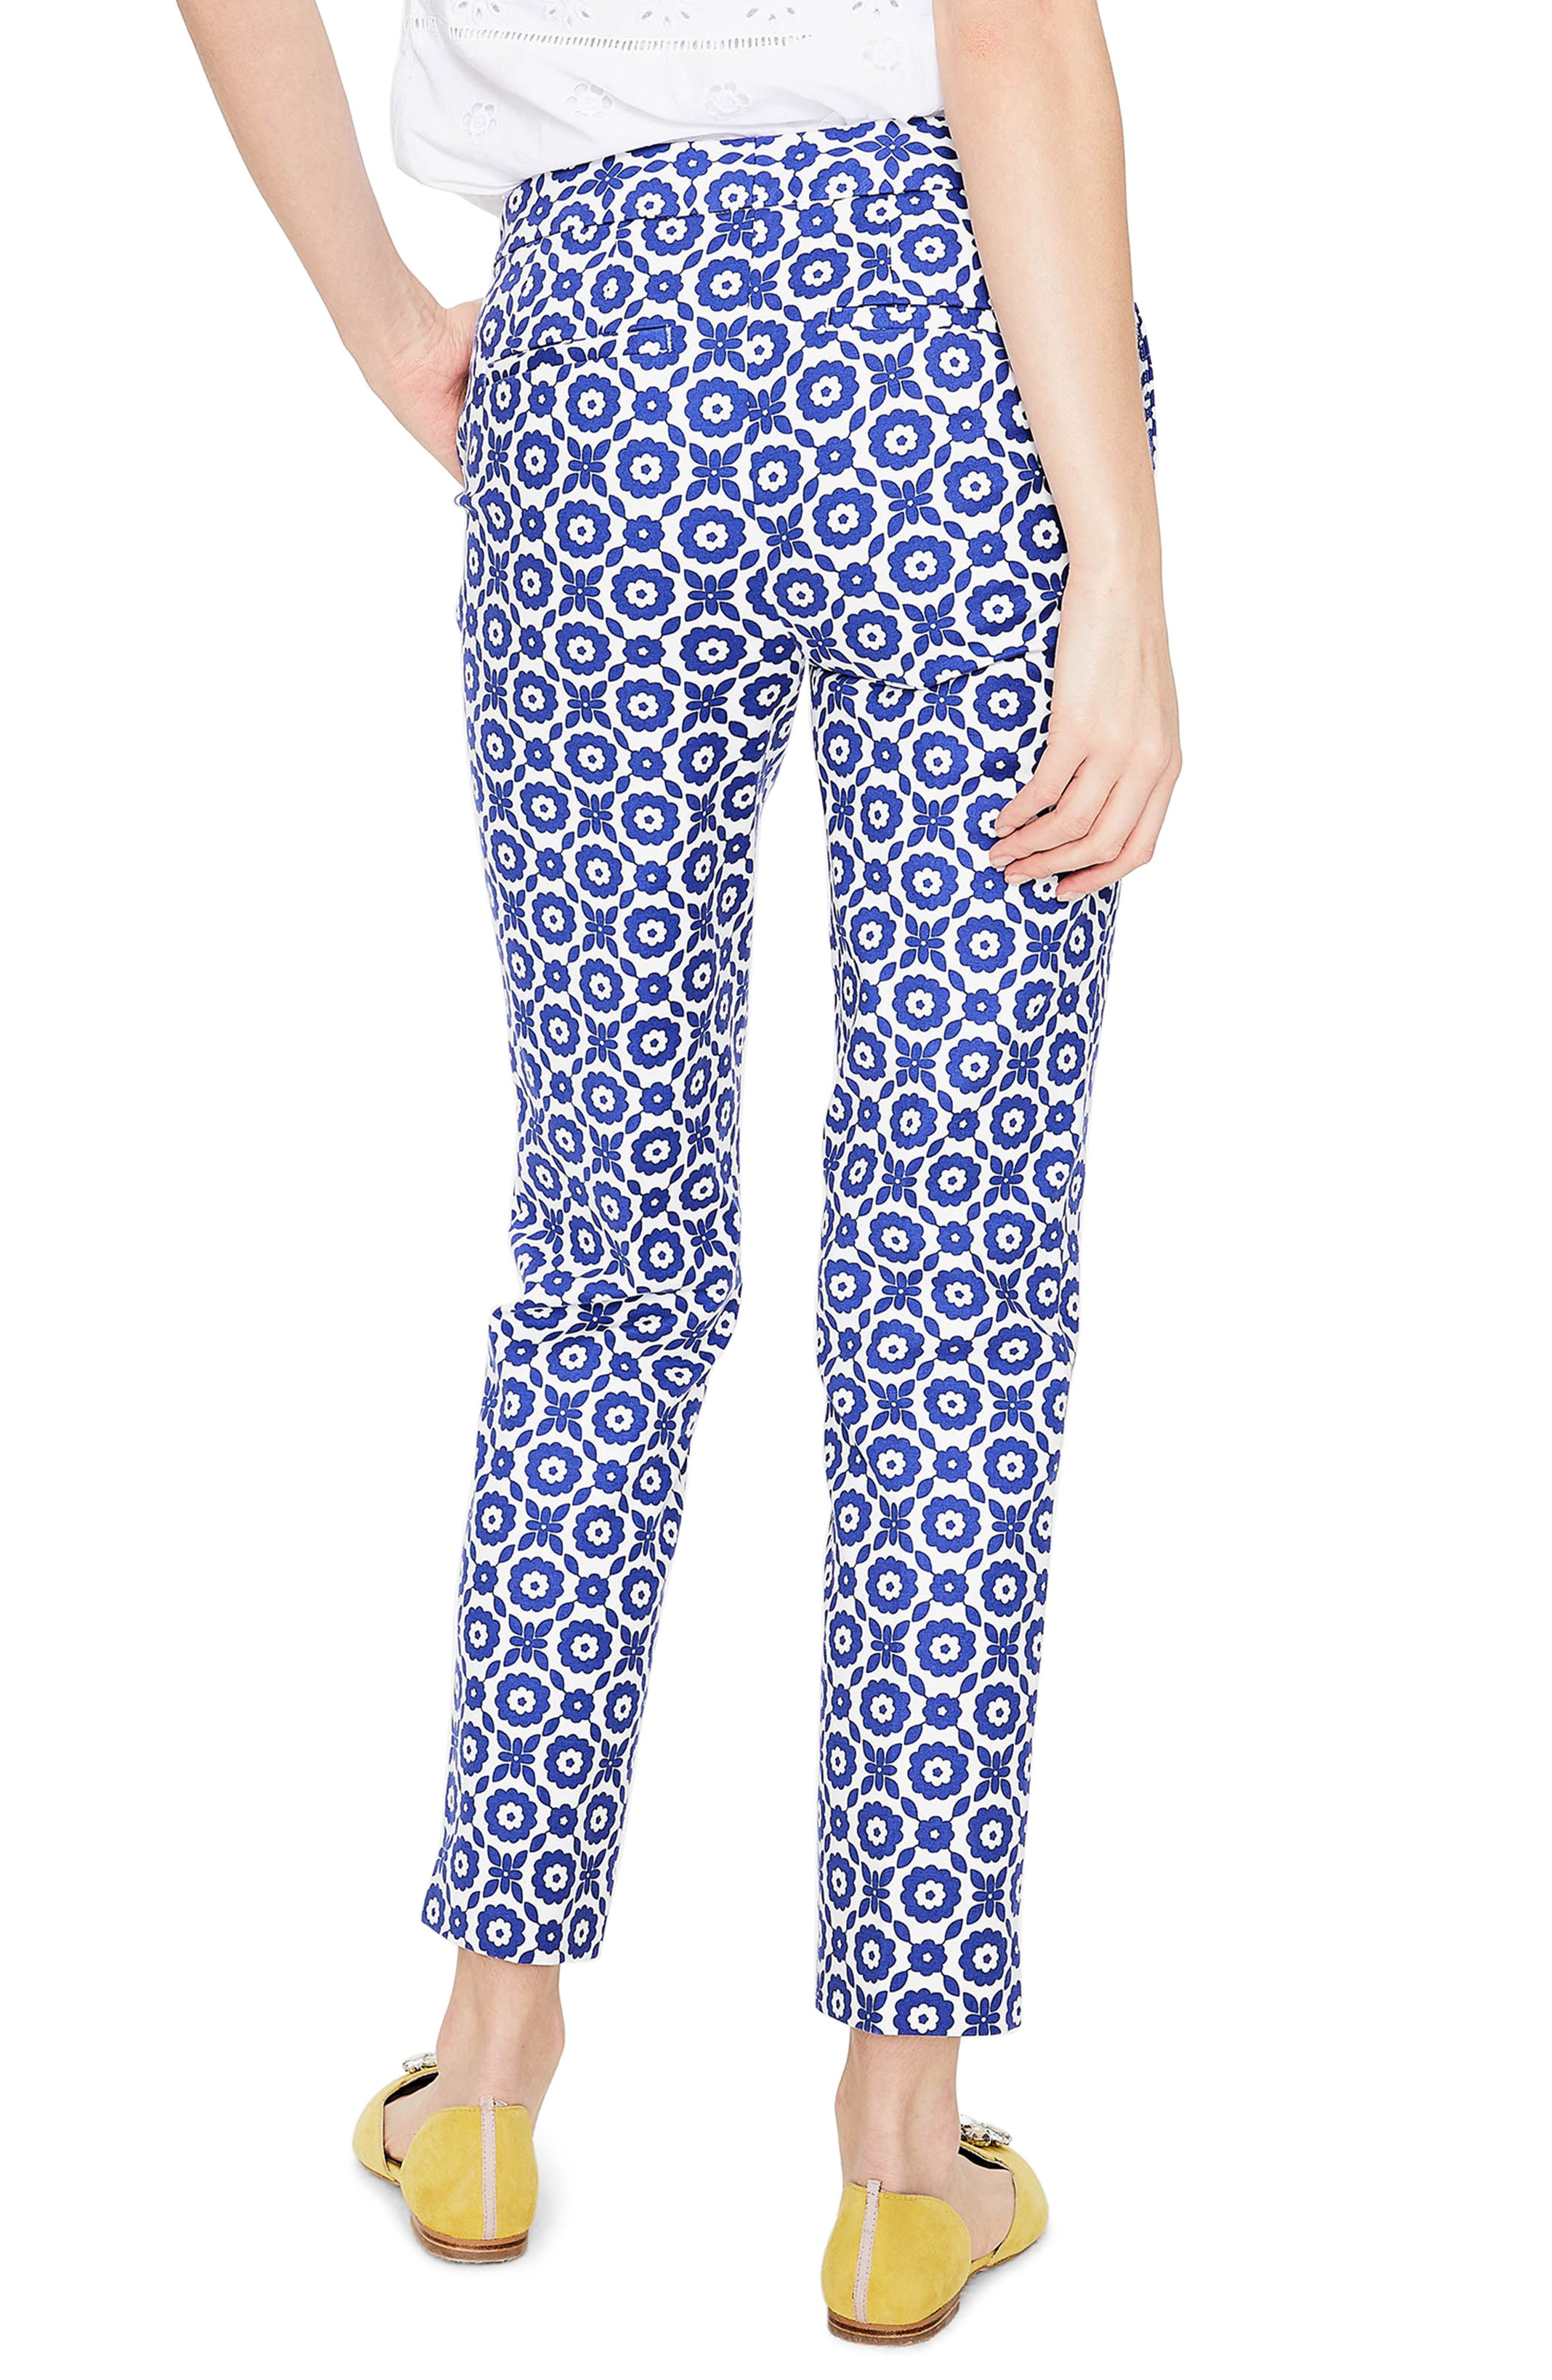 Richmond Polka Dot Stripe Contrast Ankle Pants,                             Alternate thumbnail 2, color,                             Greek Blue/ Daisy Chain